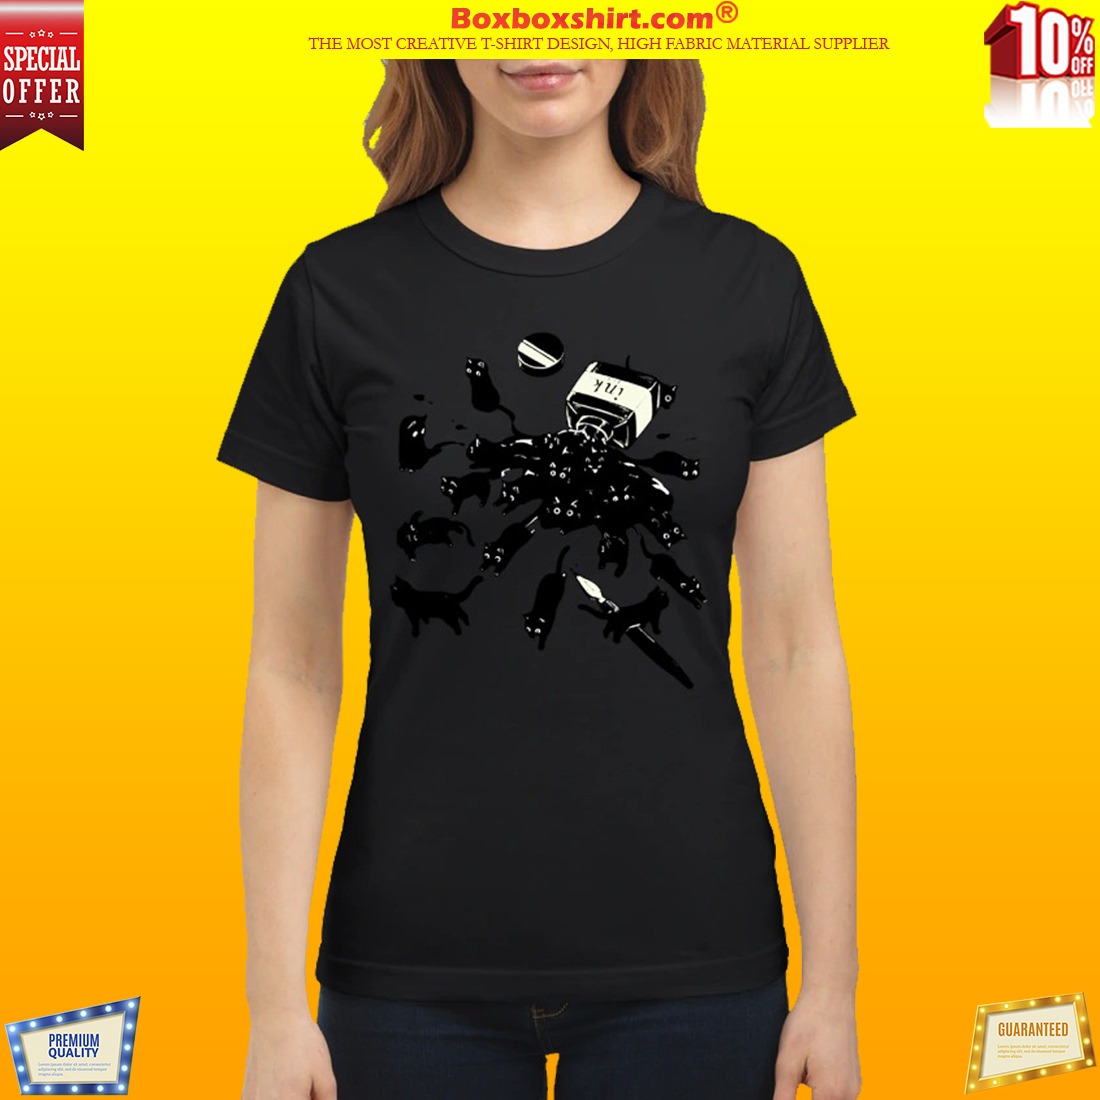 Cats in ink bottle classic shirt